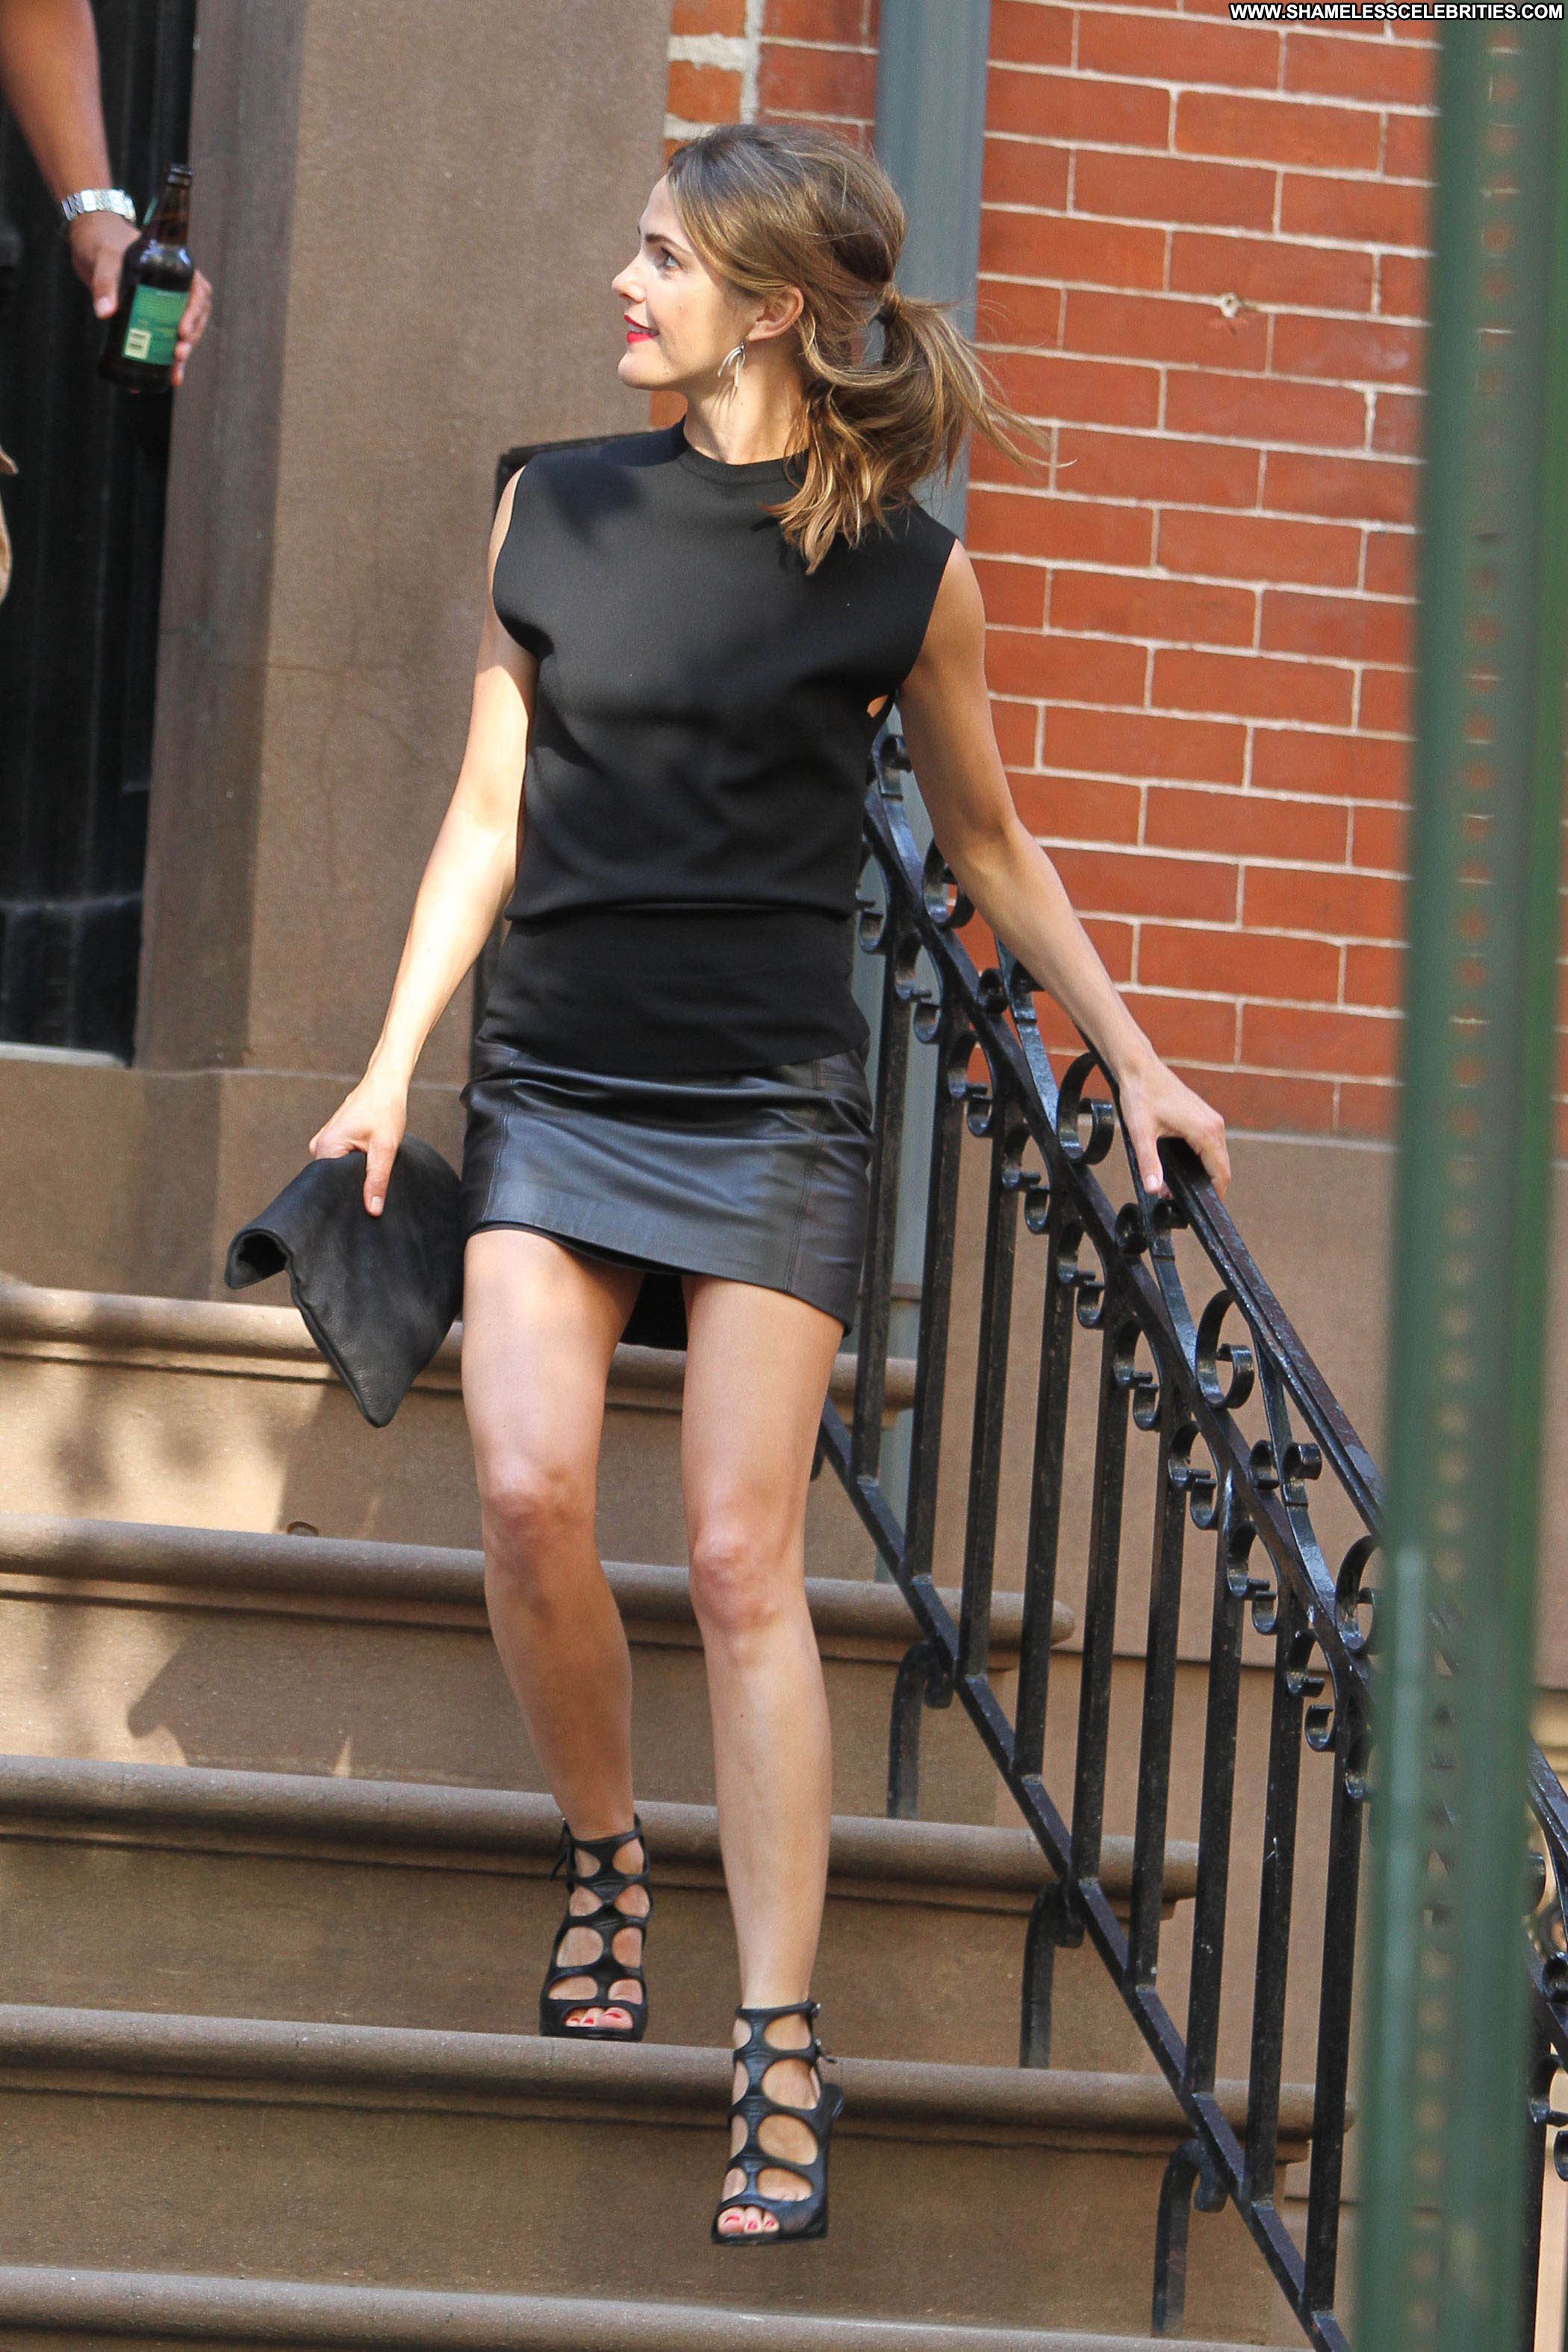 Keri Russell No Source Celebrity Beautiful Babe Posing Hot